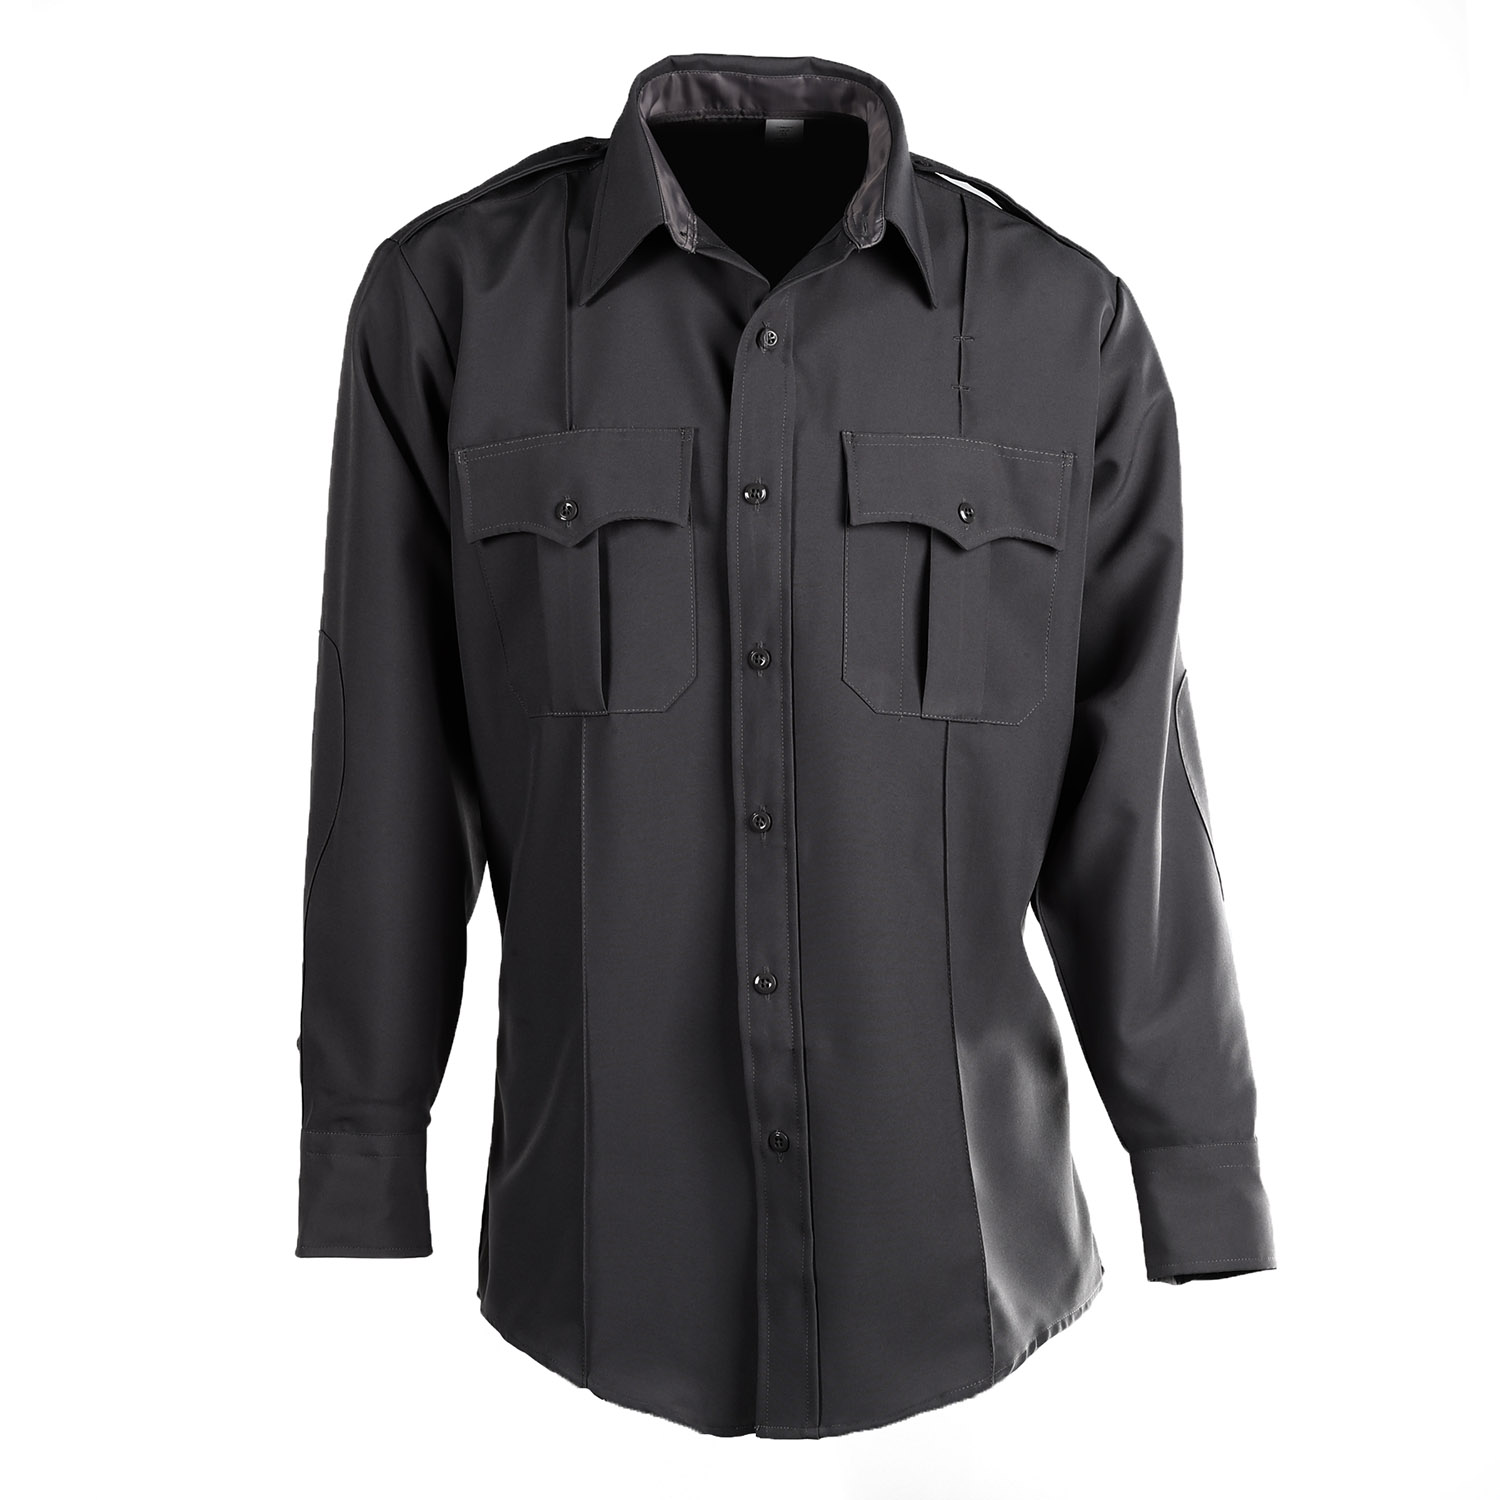 Flying Cross Men's Command Zip Front Long Sleeve Shirt